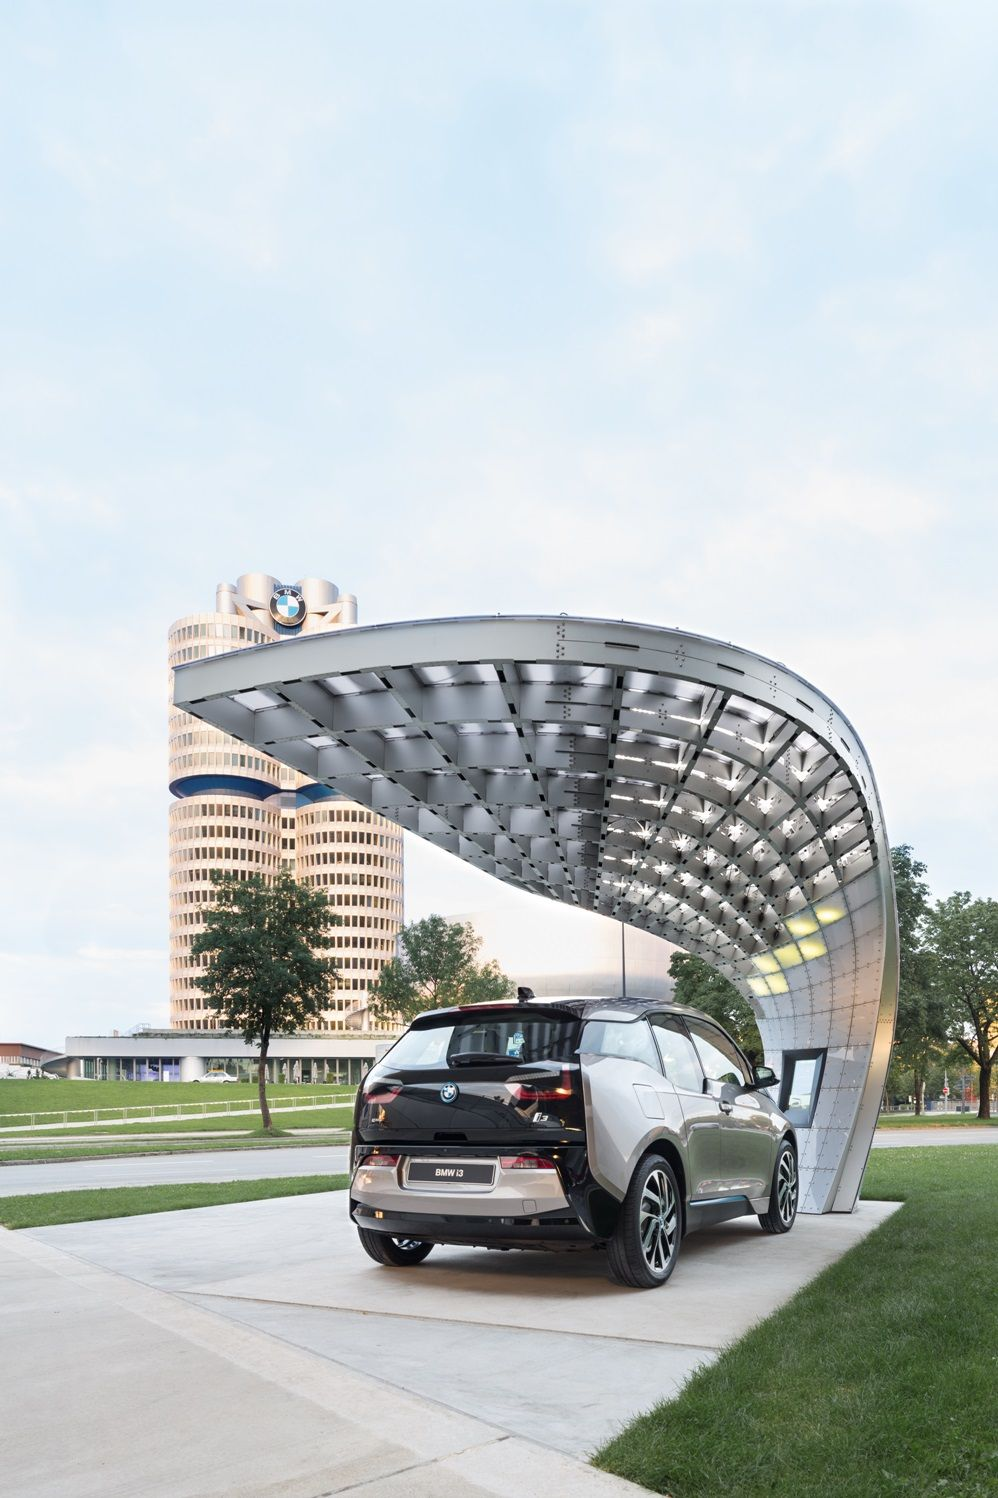 Solarchargingstation Point One S At Bmw Welt Zaryadka Naves Elektromobil